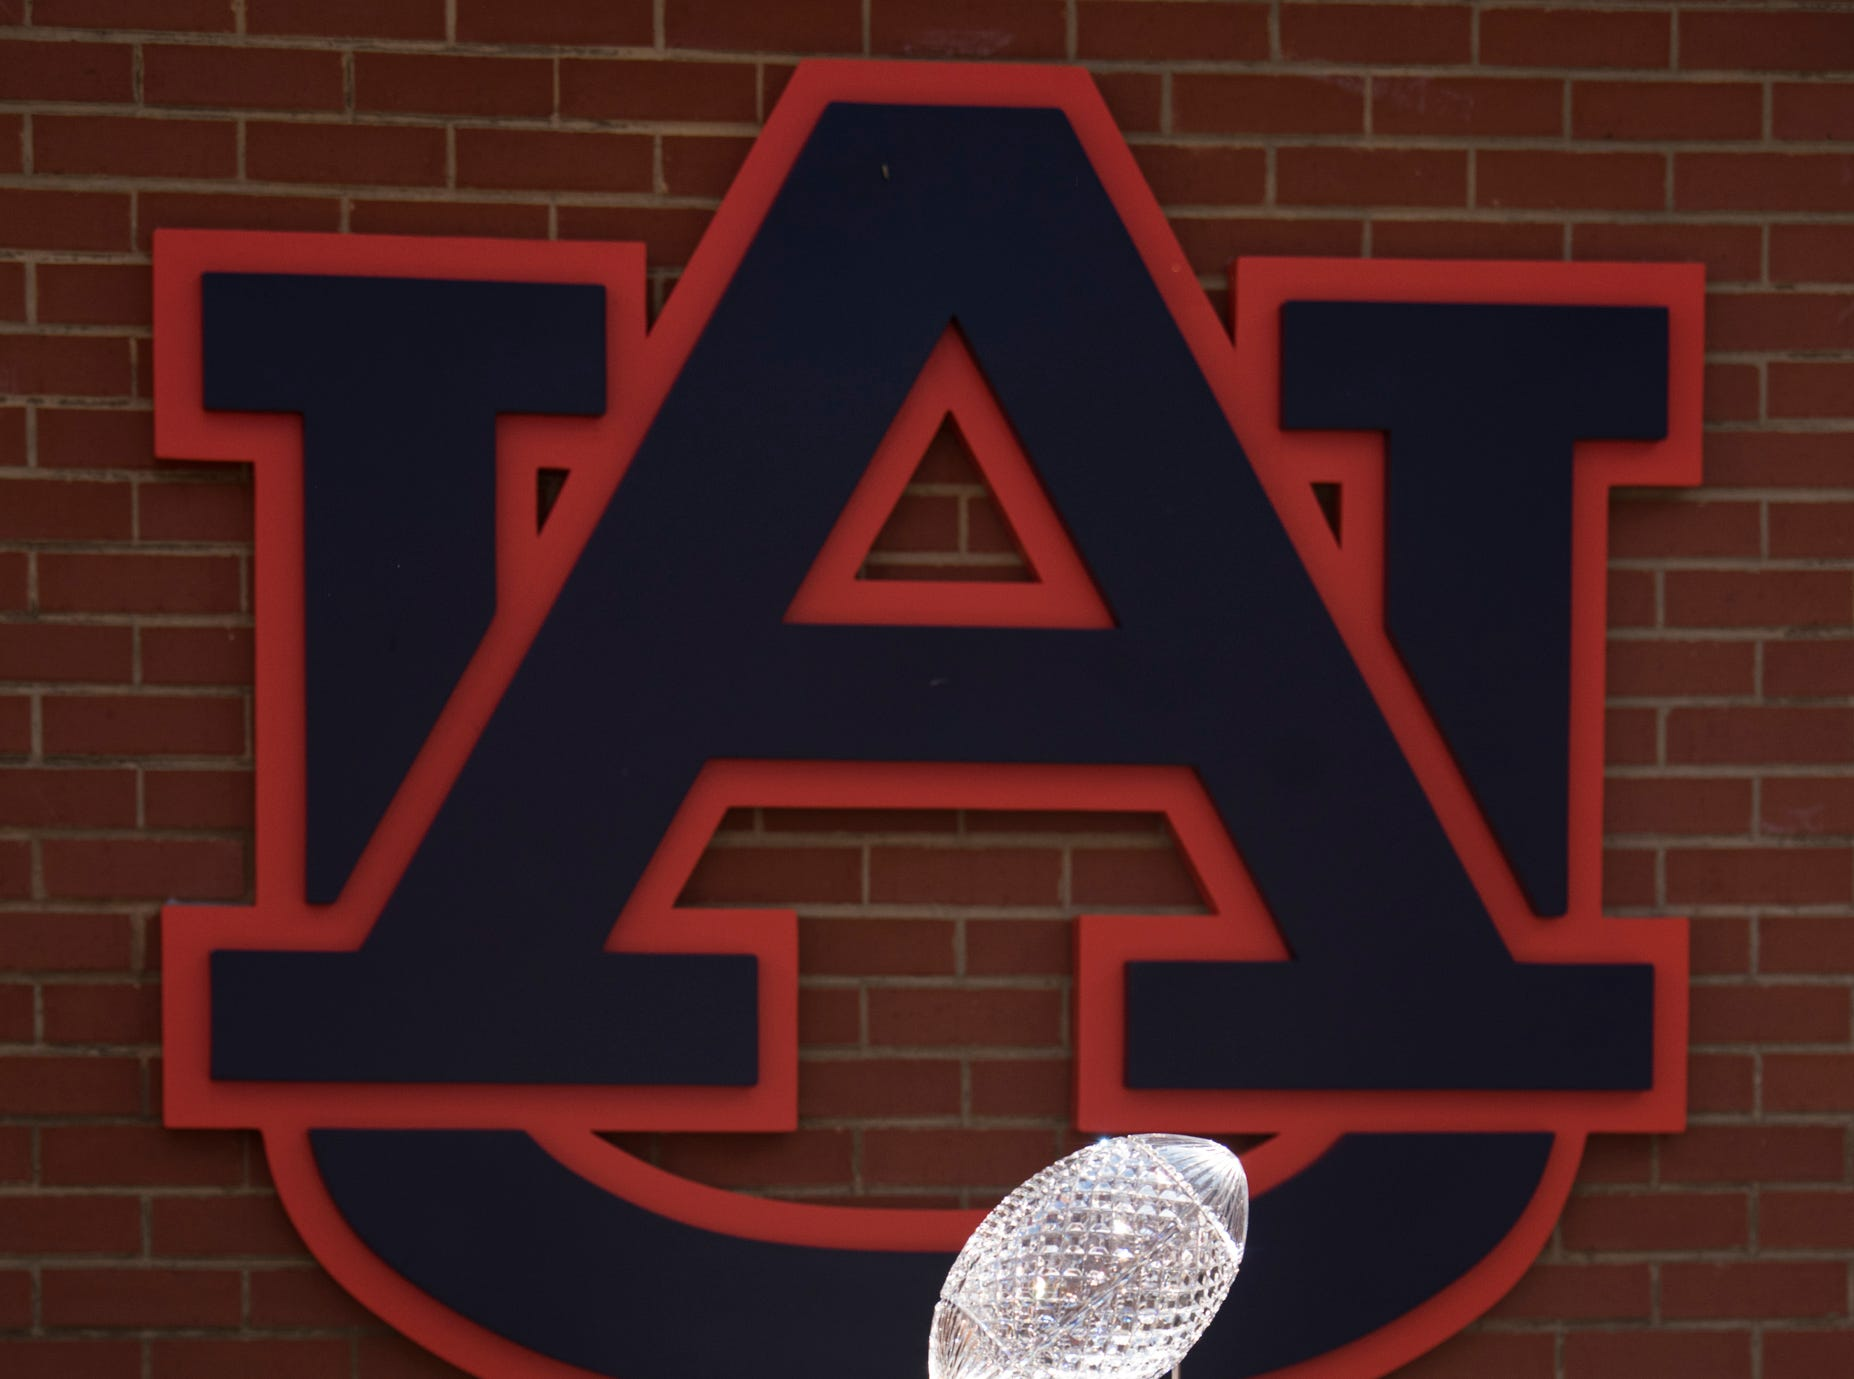 The coaches pool national championship trophy on the sidelines of the Auburn-LSU game at Jordan-Hare Stadium in Auburn, Ala., on Saturday, Sept. 15, 2018. LSU defeated Auburn 22-21.